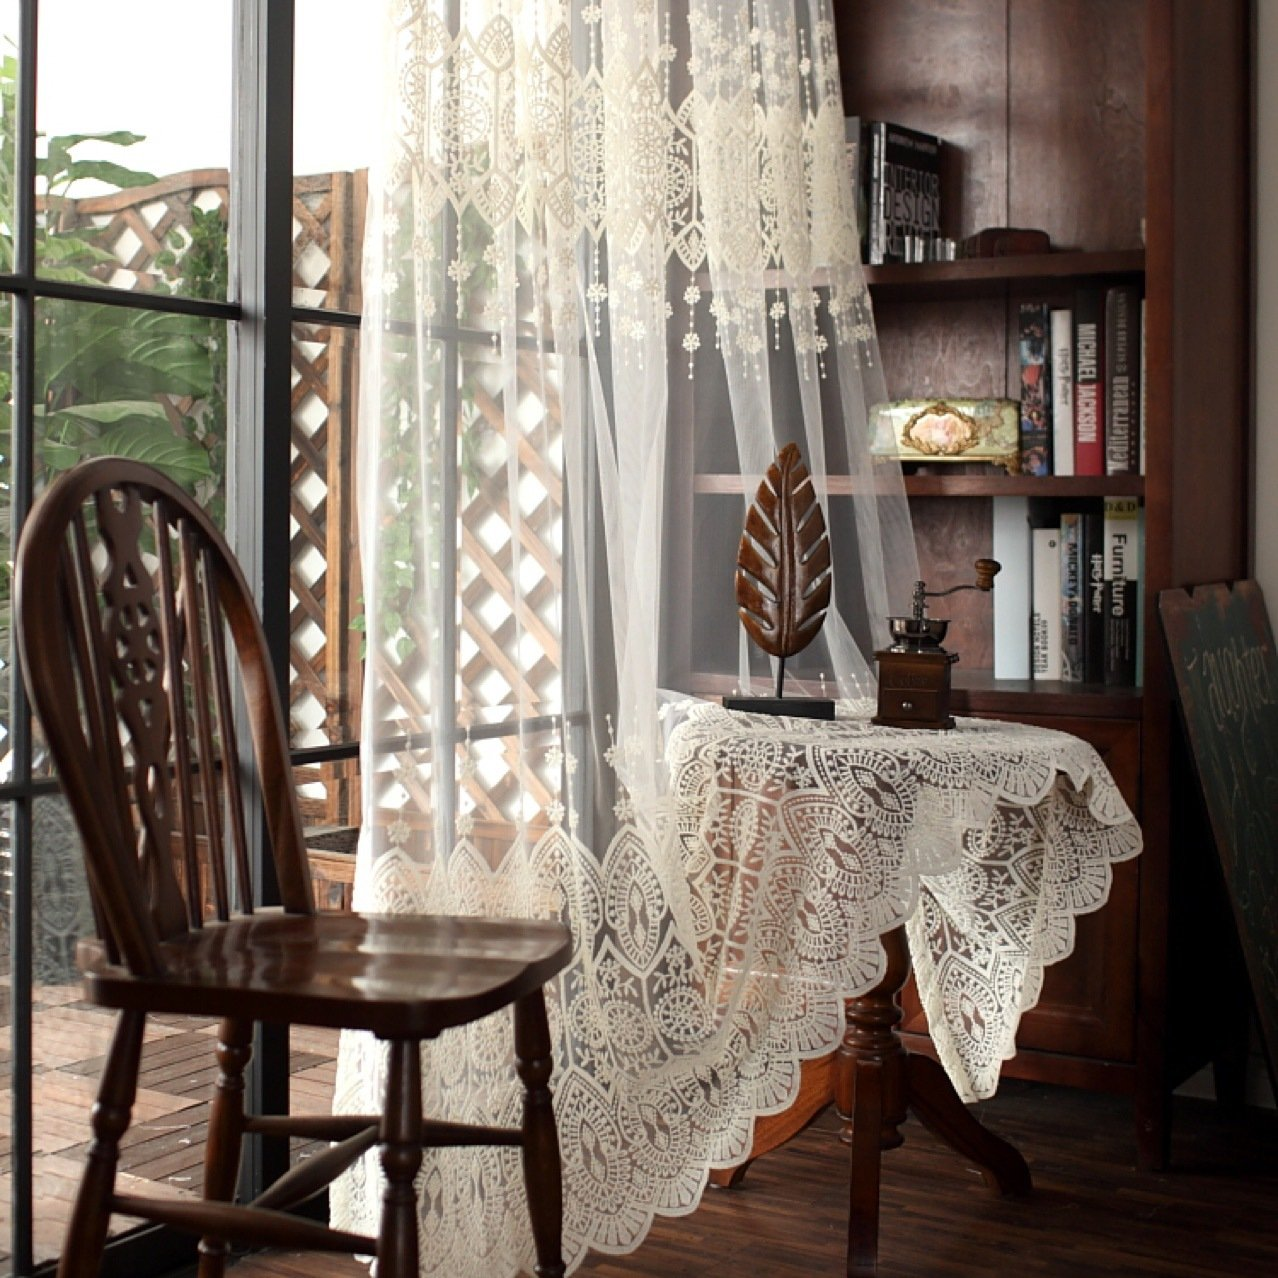 AiFish European Embroidered Beige Sheer Tulle Curtains Elegant Lace Curtain Rod Pocket Window Treatment Home Decor Shiny Transparent Gauze Voile Curtains for Living Room 1 Piece/Panel W52 x L84 inch